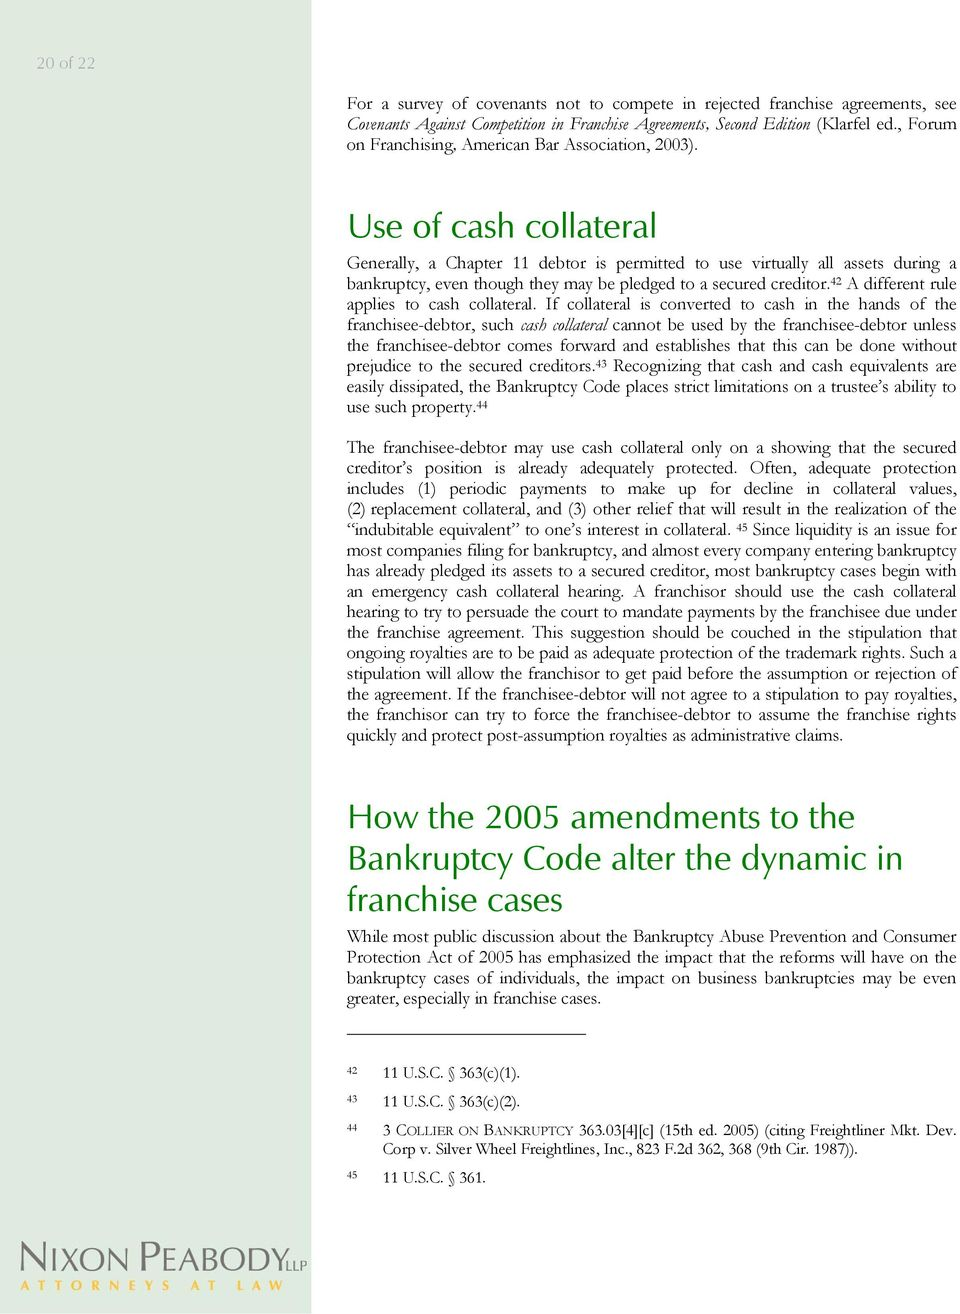 Use of cash collateral Generally, a Chapter 11 debtor is permitted to use virtually all assets during a bankruptcy, even though they may be pledged to a secured creditor.